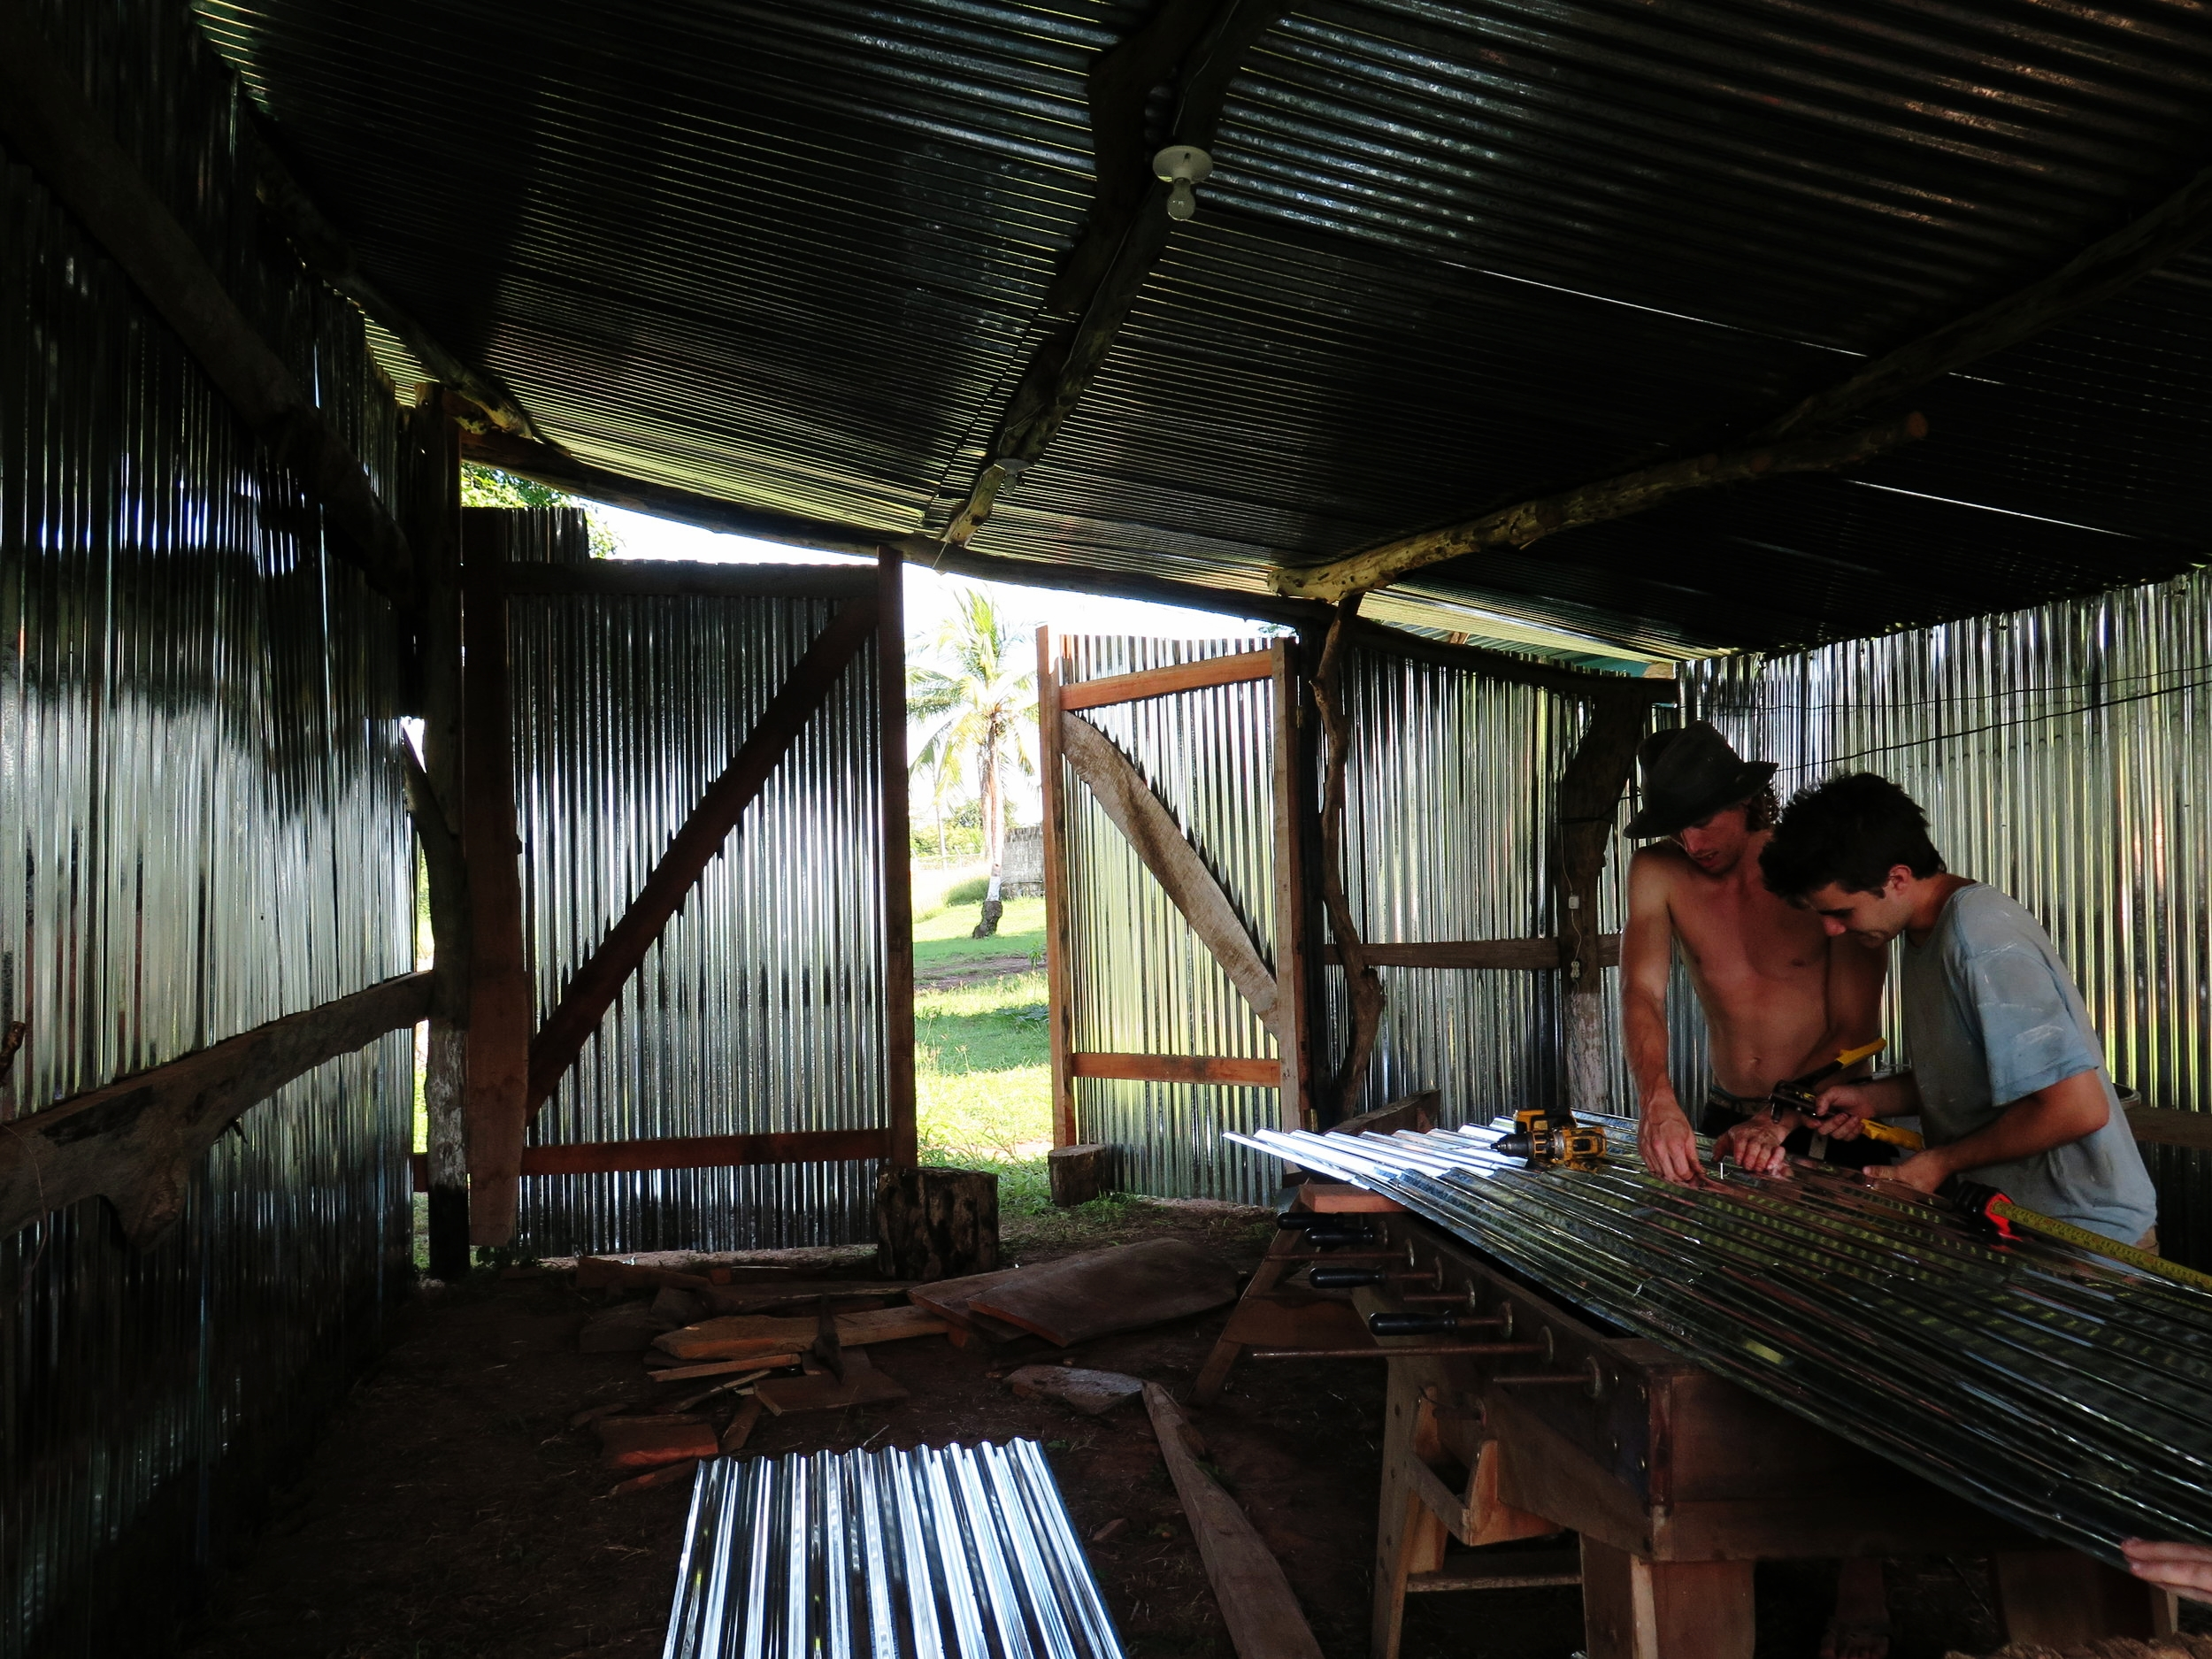 Artur & Chris measuring tin to create walls for the metal workshop.